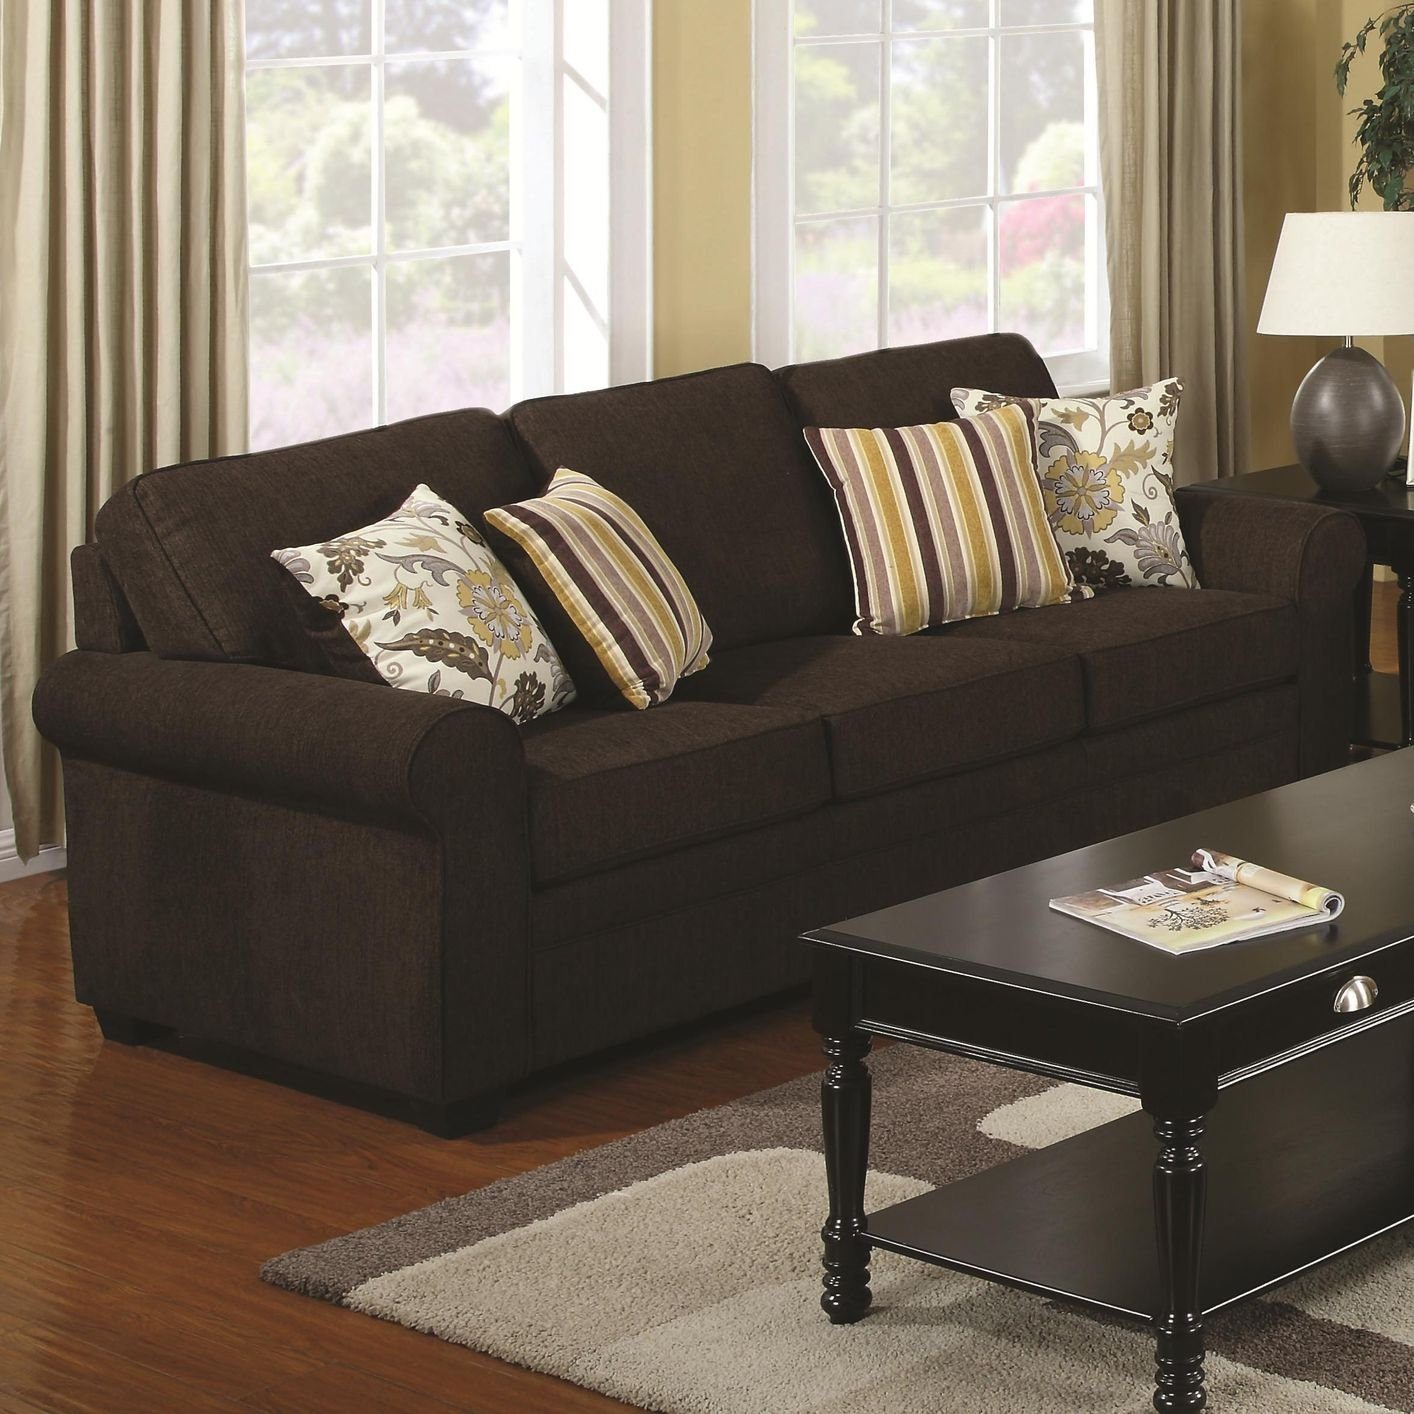 Coaster rosalie 504241 brown fabric sofa steal a sofa for Black fabric couches